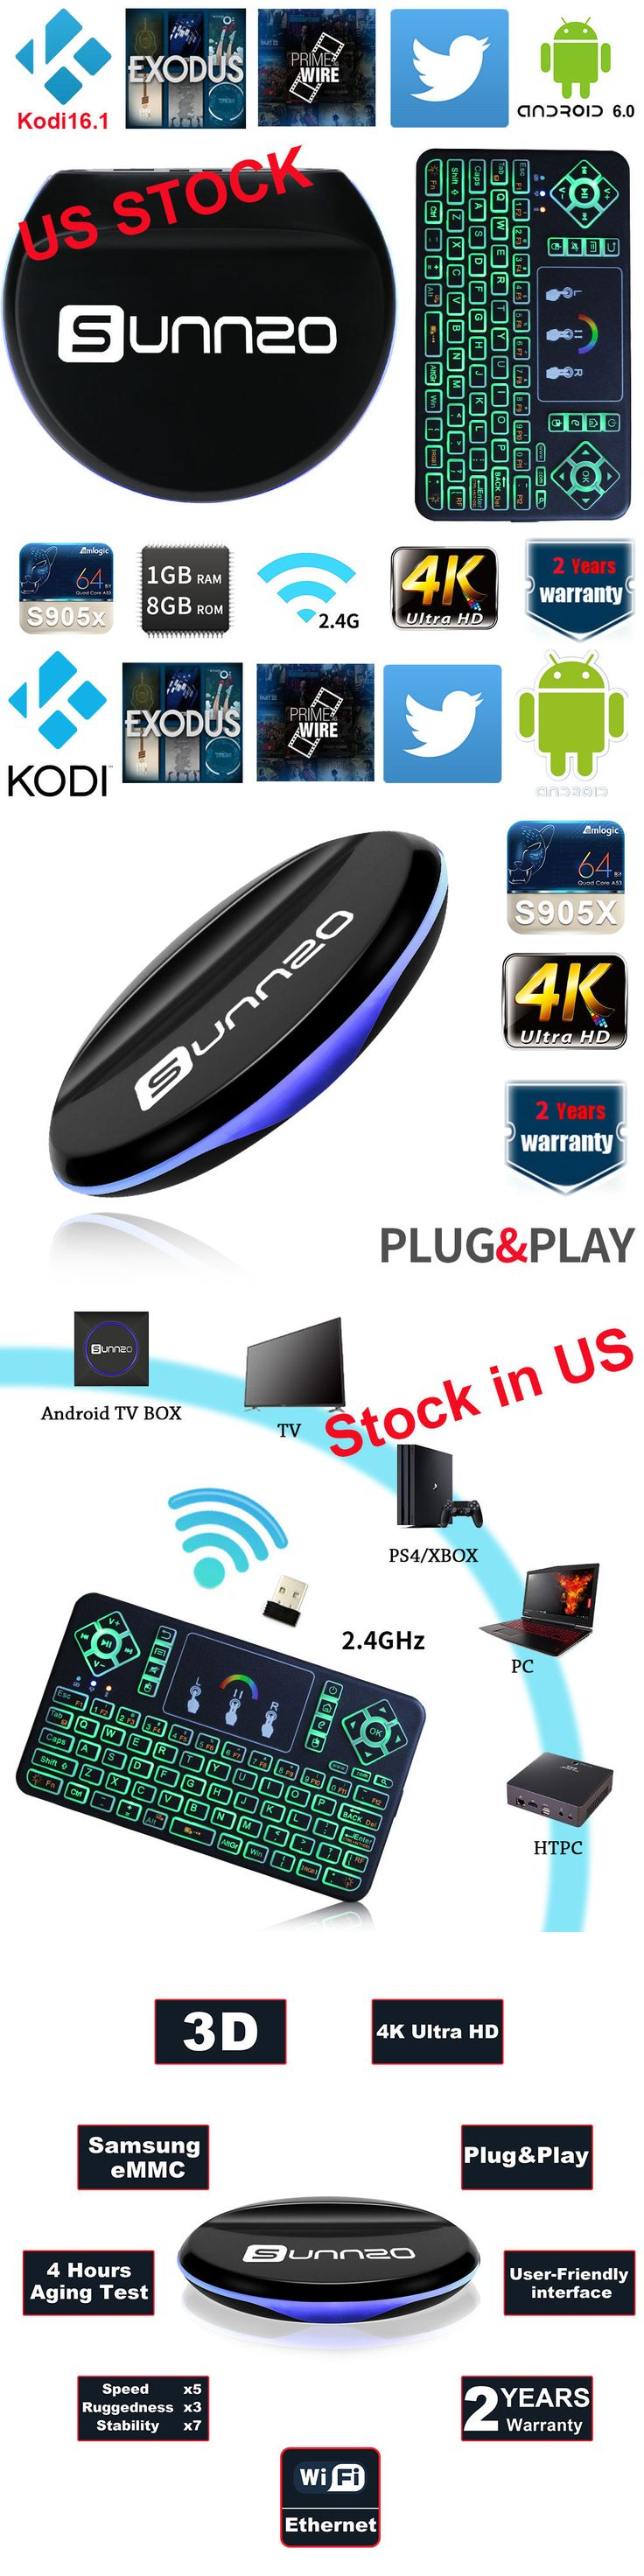 Cable TV Boxes: Kodi 16.1 Android Tv Box S905x Exodus 1 Channel And Rgb Wireless Qwerty Keyboard -> BUY IT NOW ONLY: $53.99 on eBay!